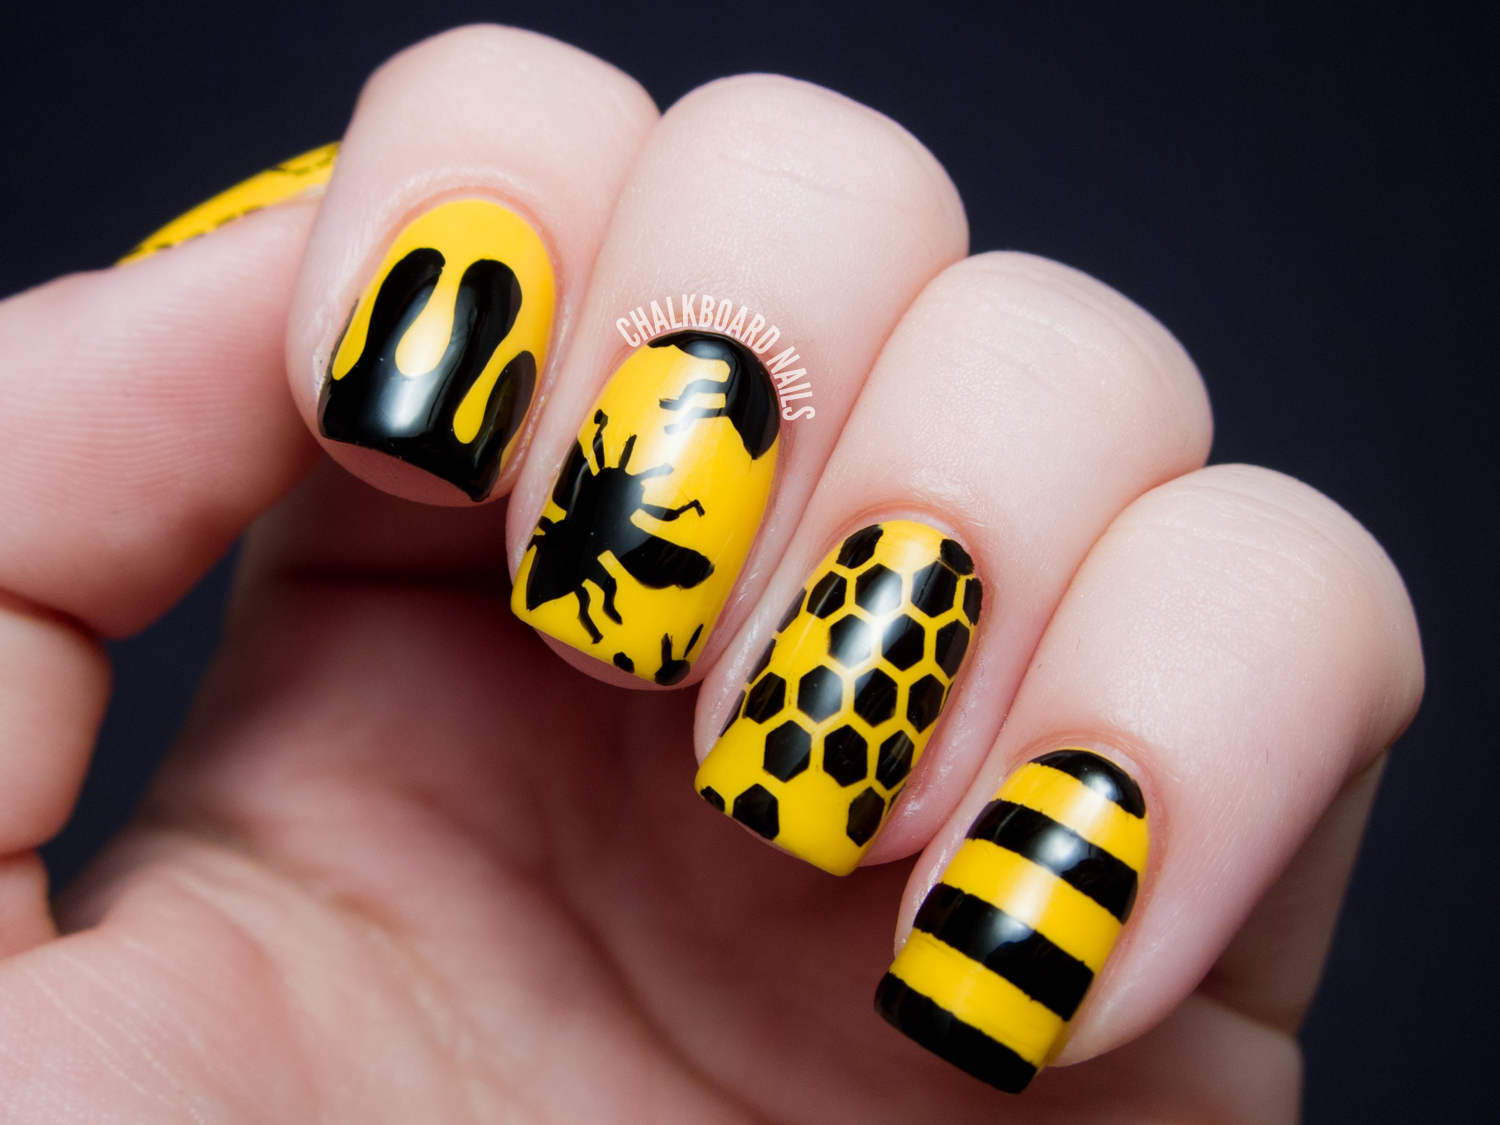 31dc2013 Day 03 Yellow Bee Silhouettes Chalkboard Nails Nail Art Blog